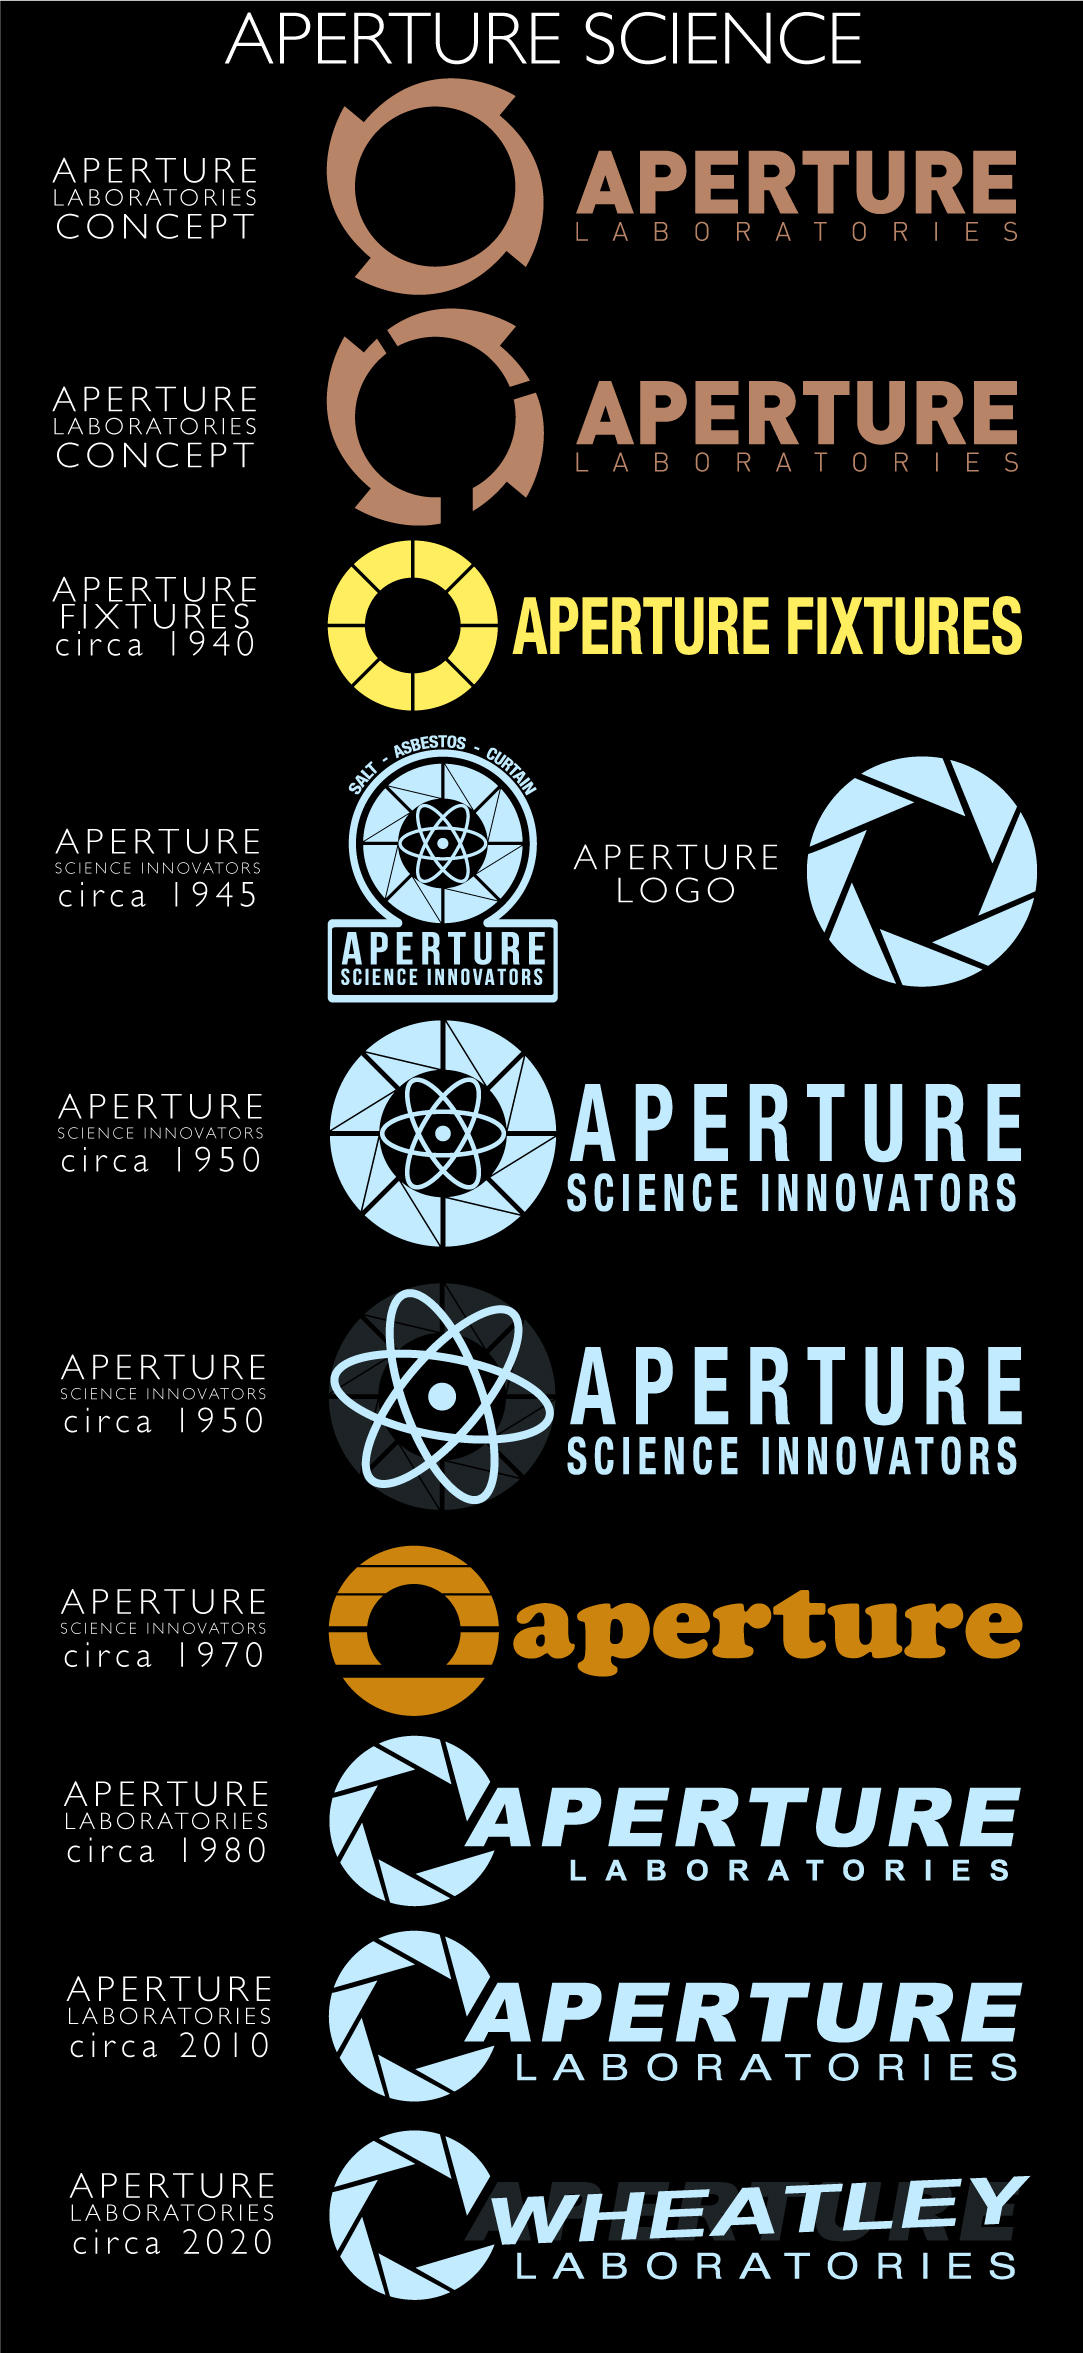 Aperture logos by zeptozephyr on deviantart for 3 portals